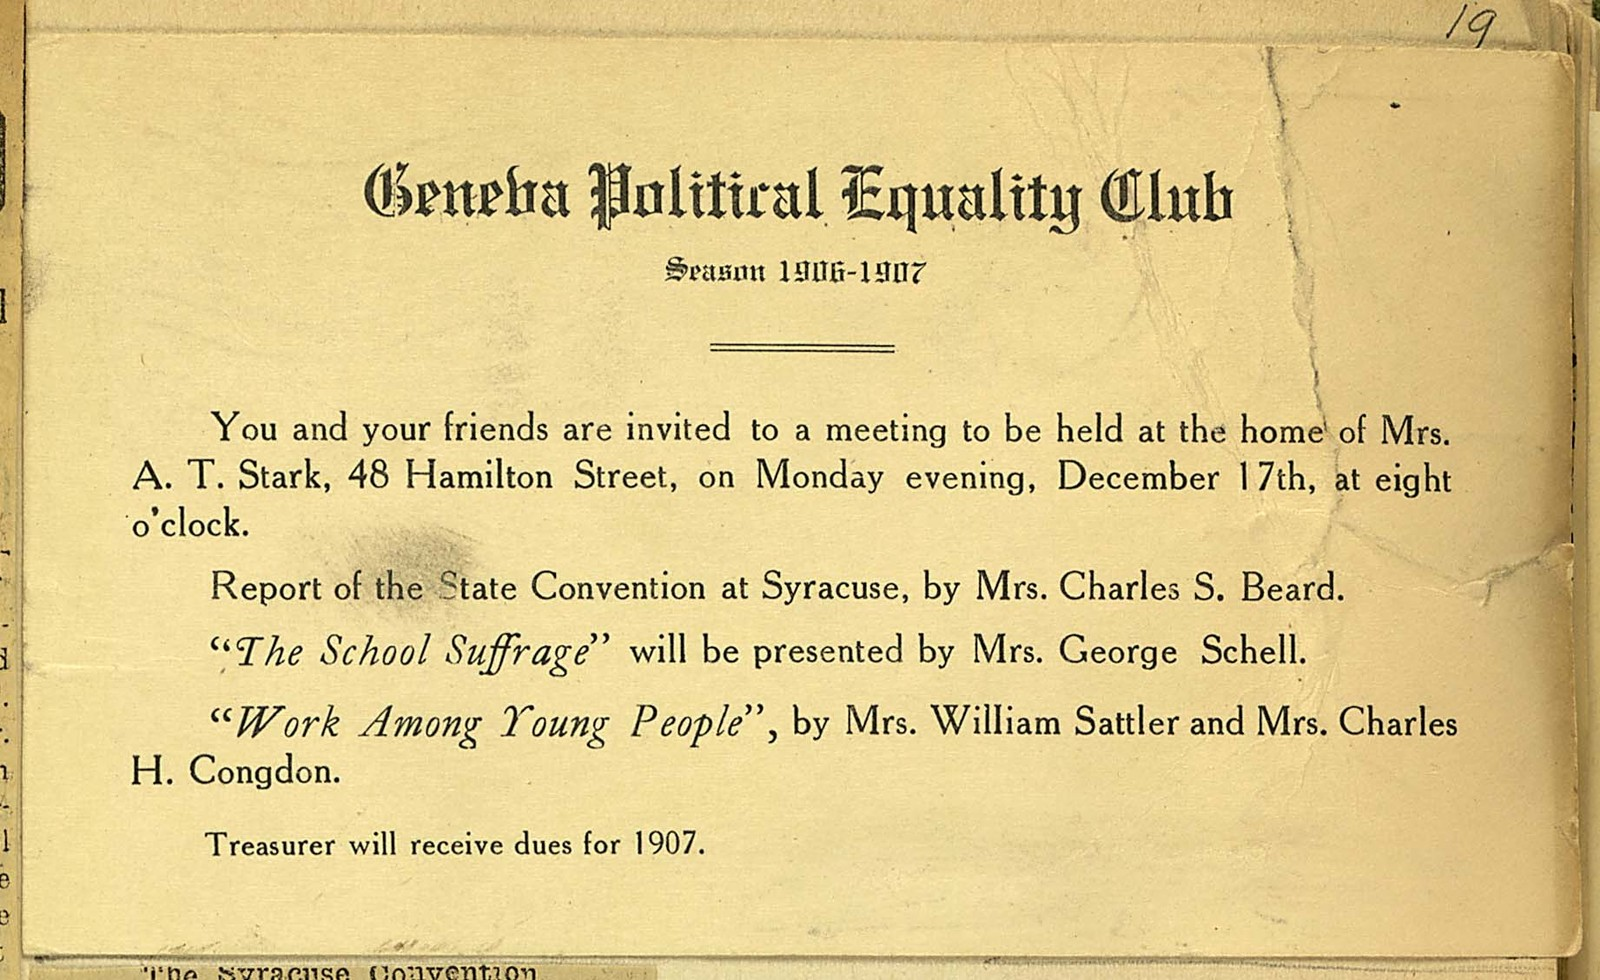 Geneva Political Equality Club meeting notice held at home of Mrs. A. T. Stark